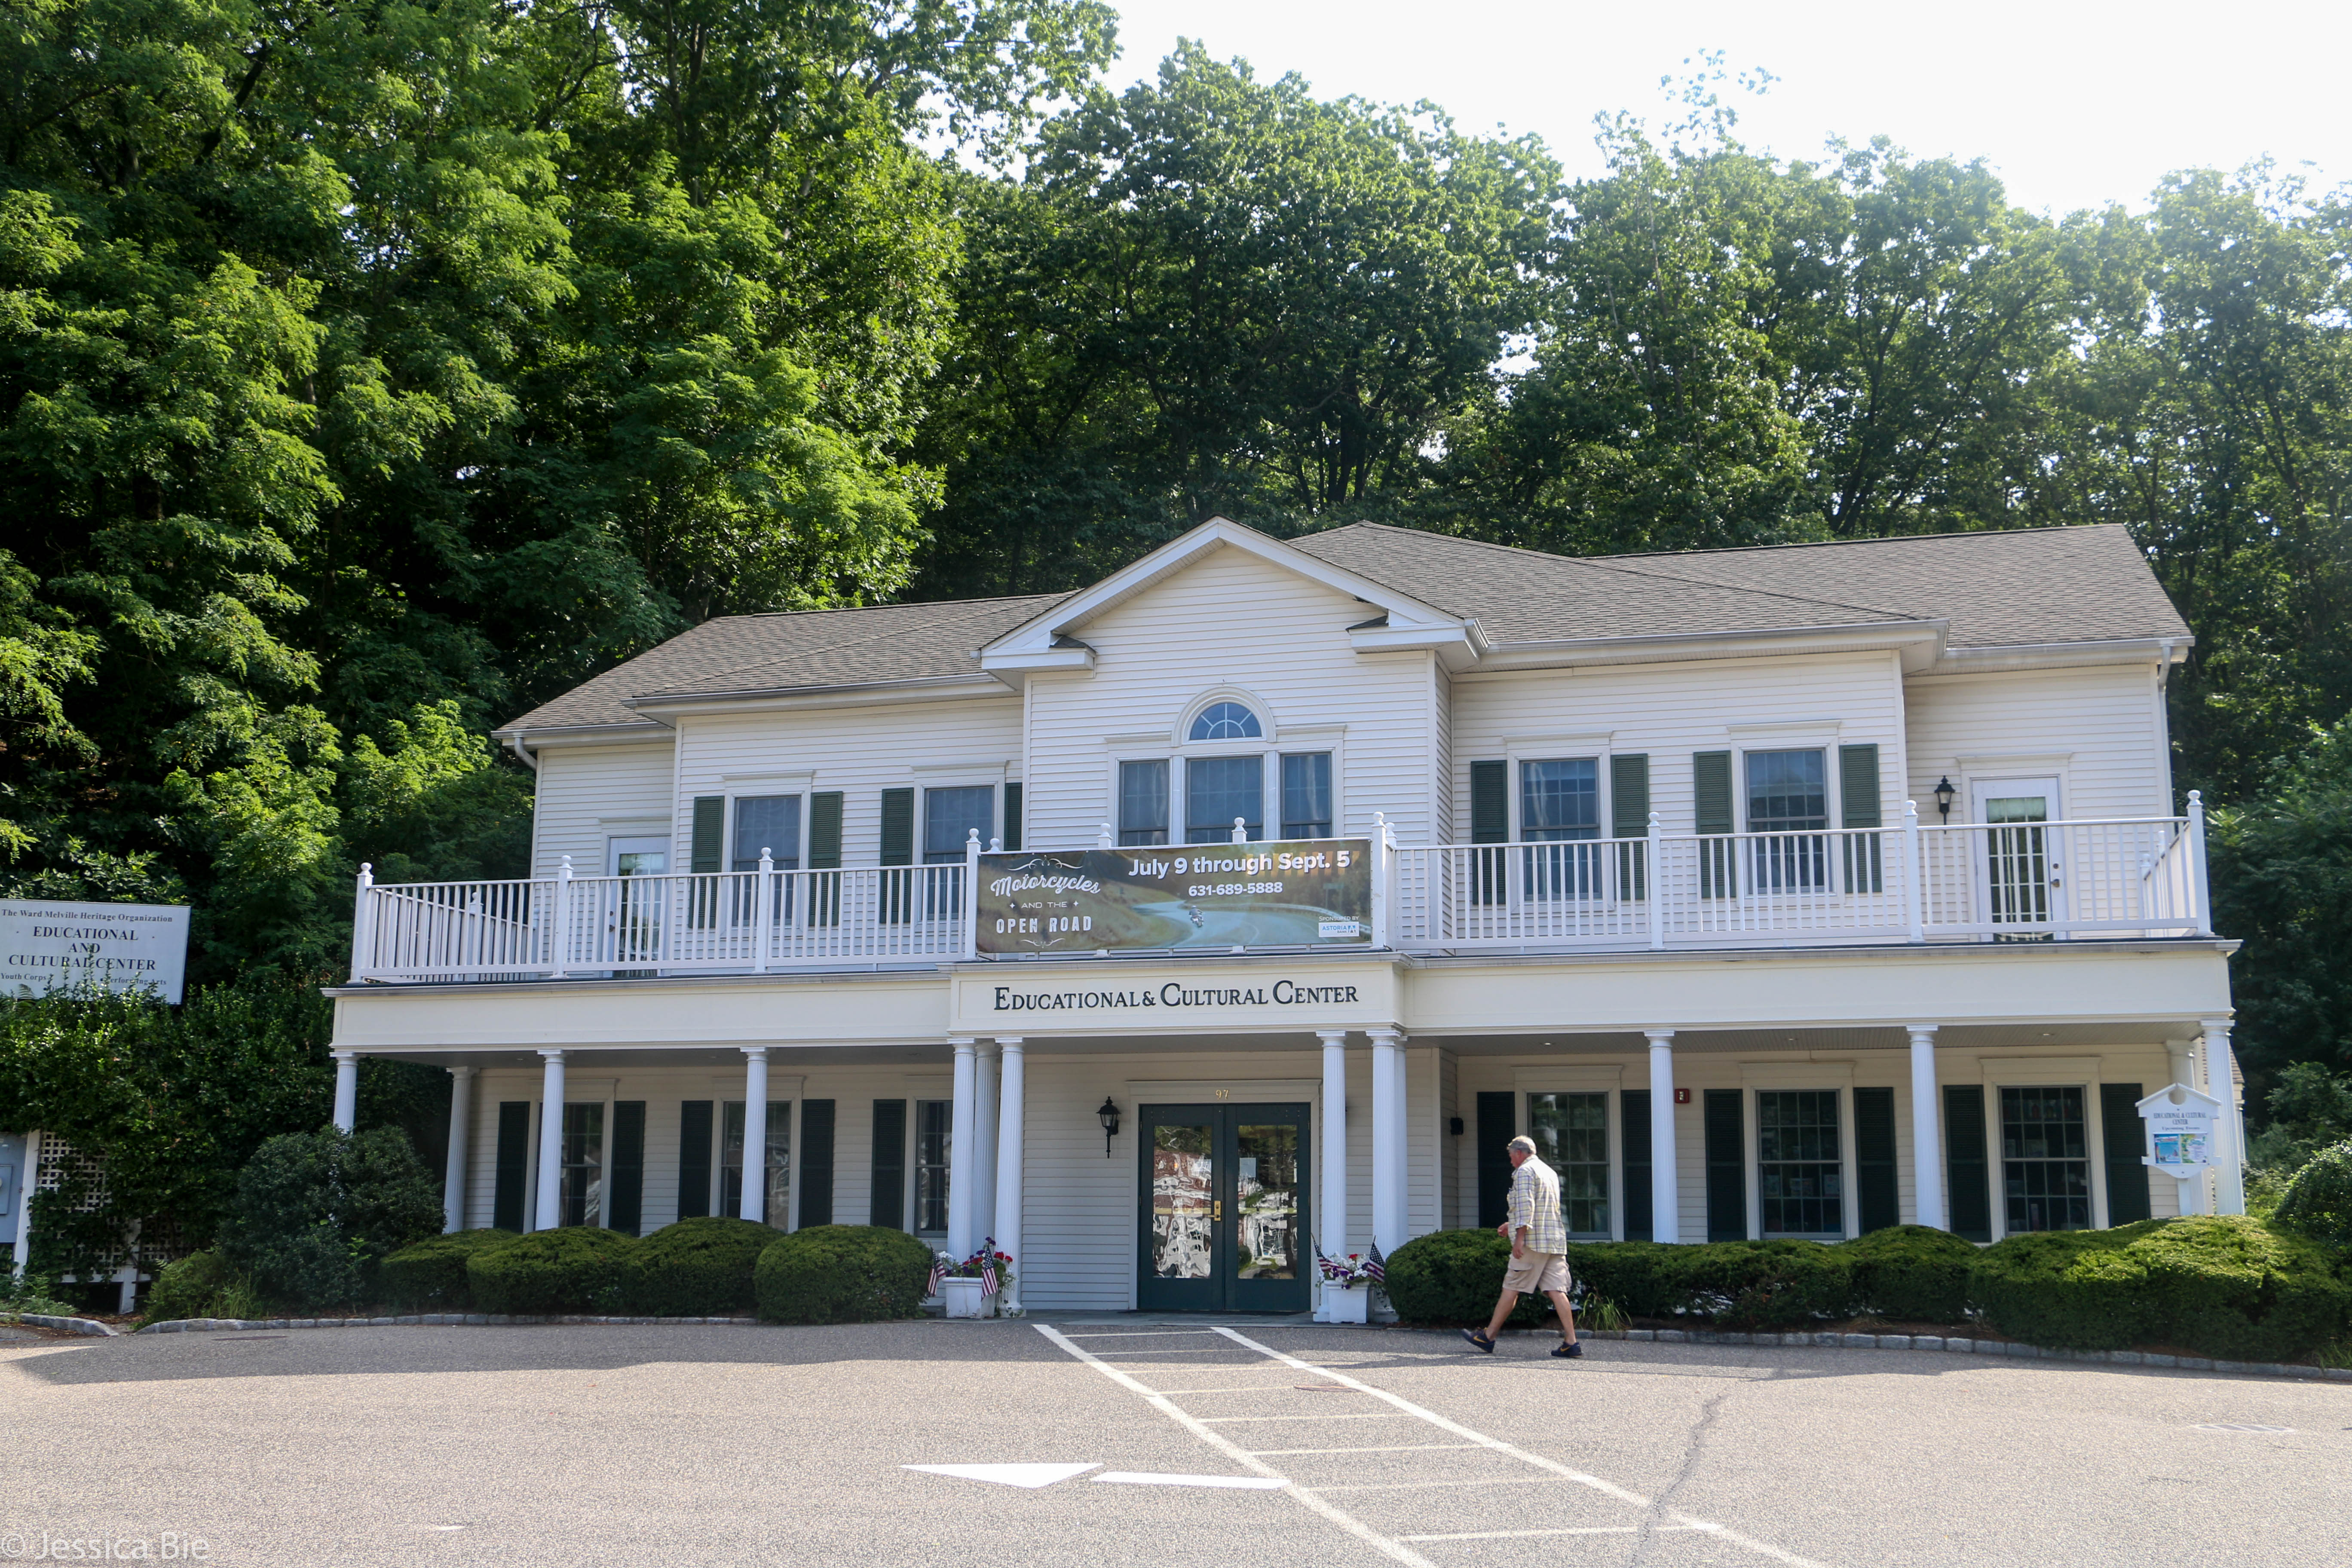 Ward Melville Heritage Organization Educational & Cultural Center